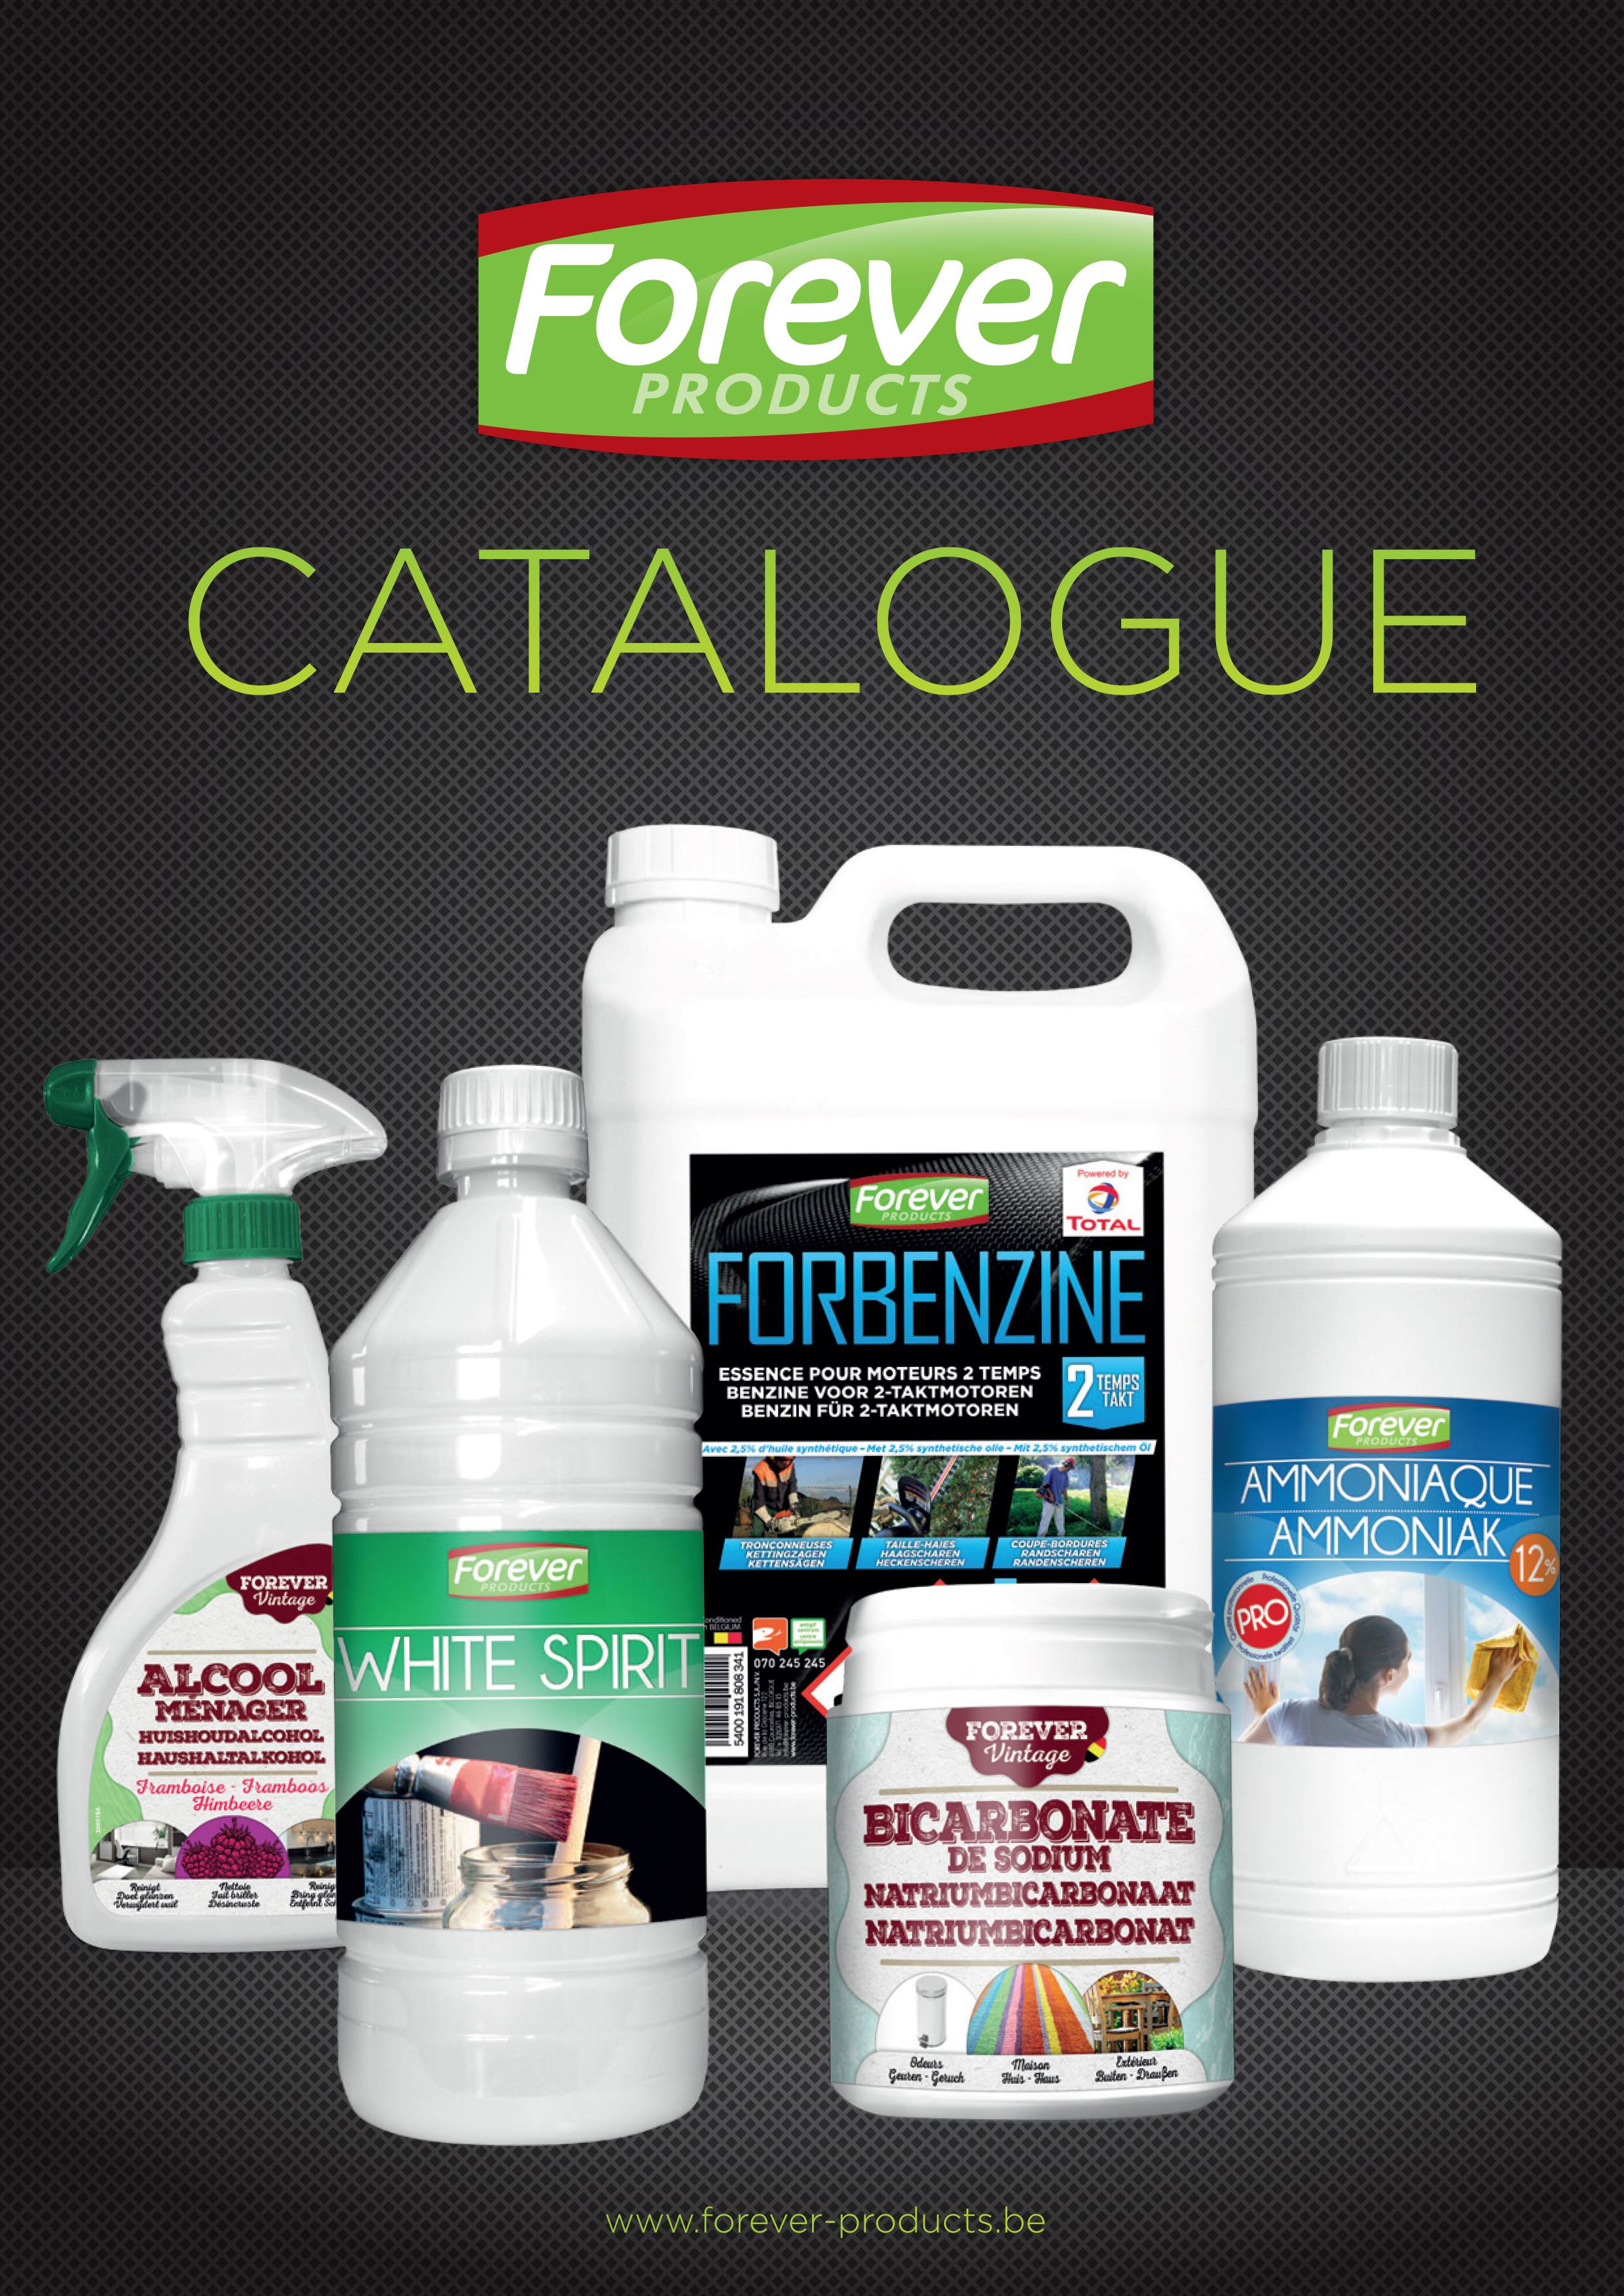 Catalogue complet 2020 FOREVER PRODUCTS